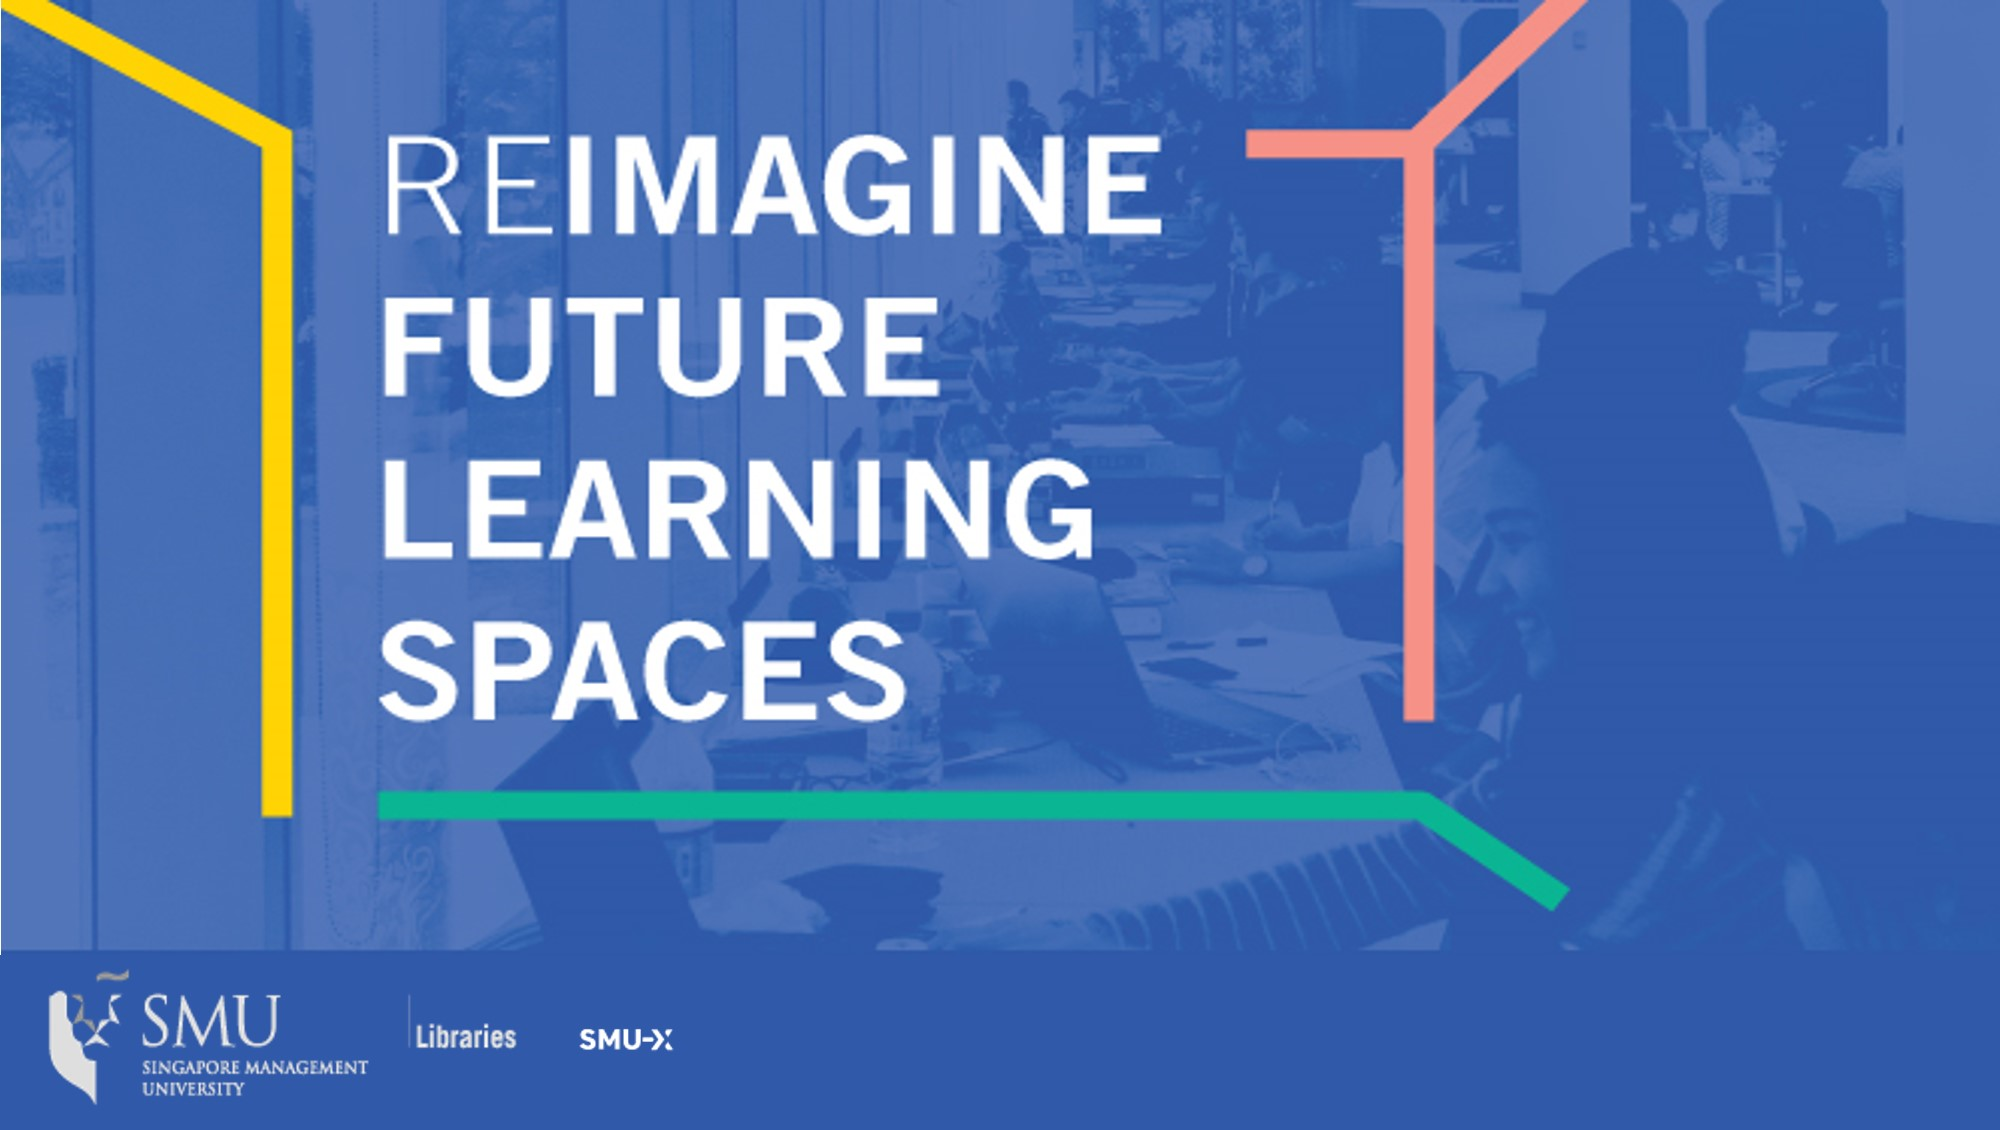 2018 Reimagine Future Learning Spaces